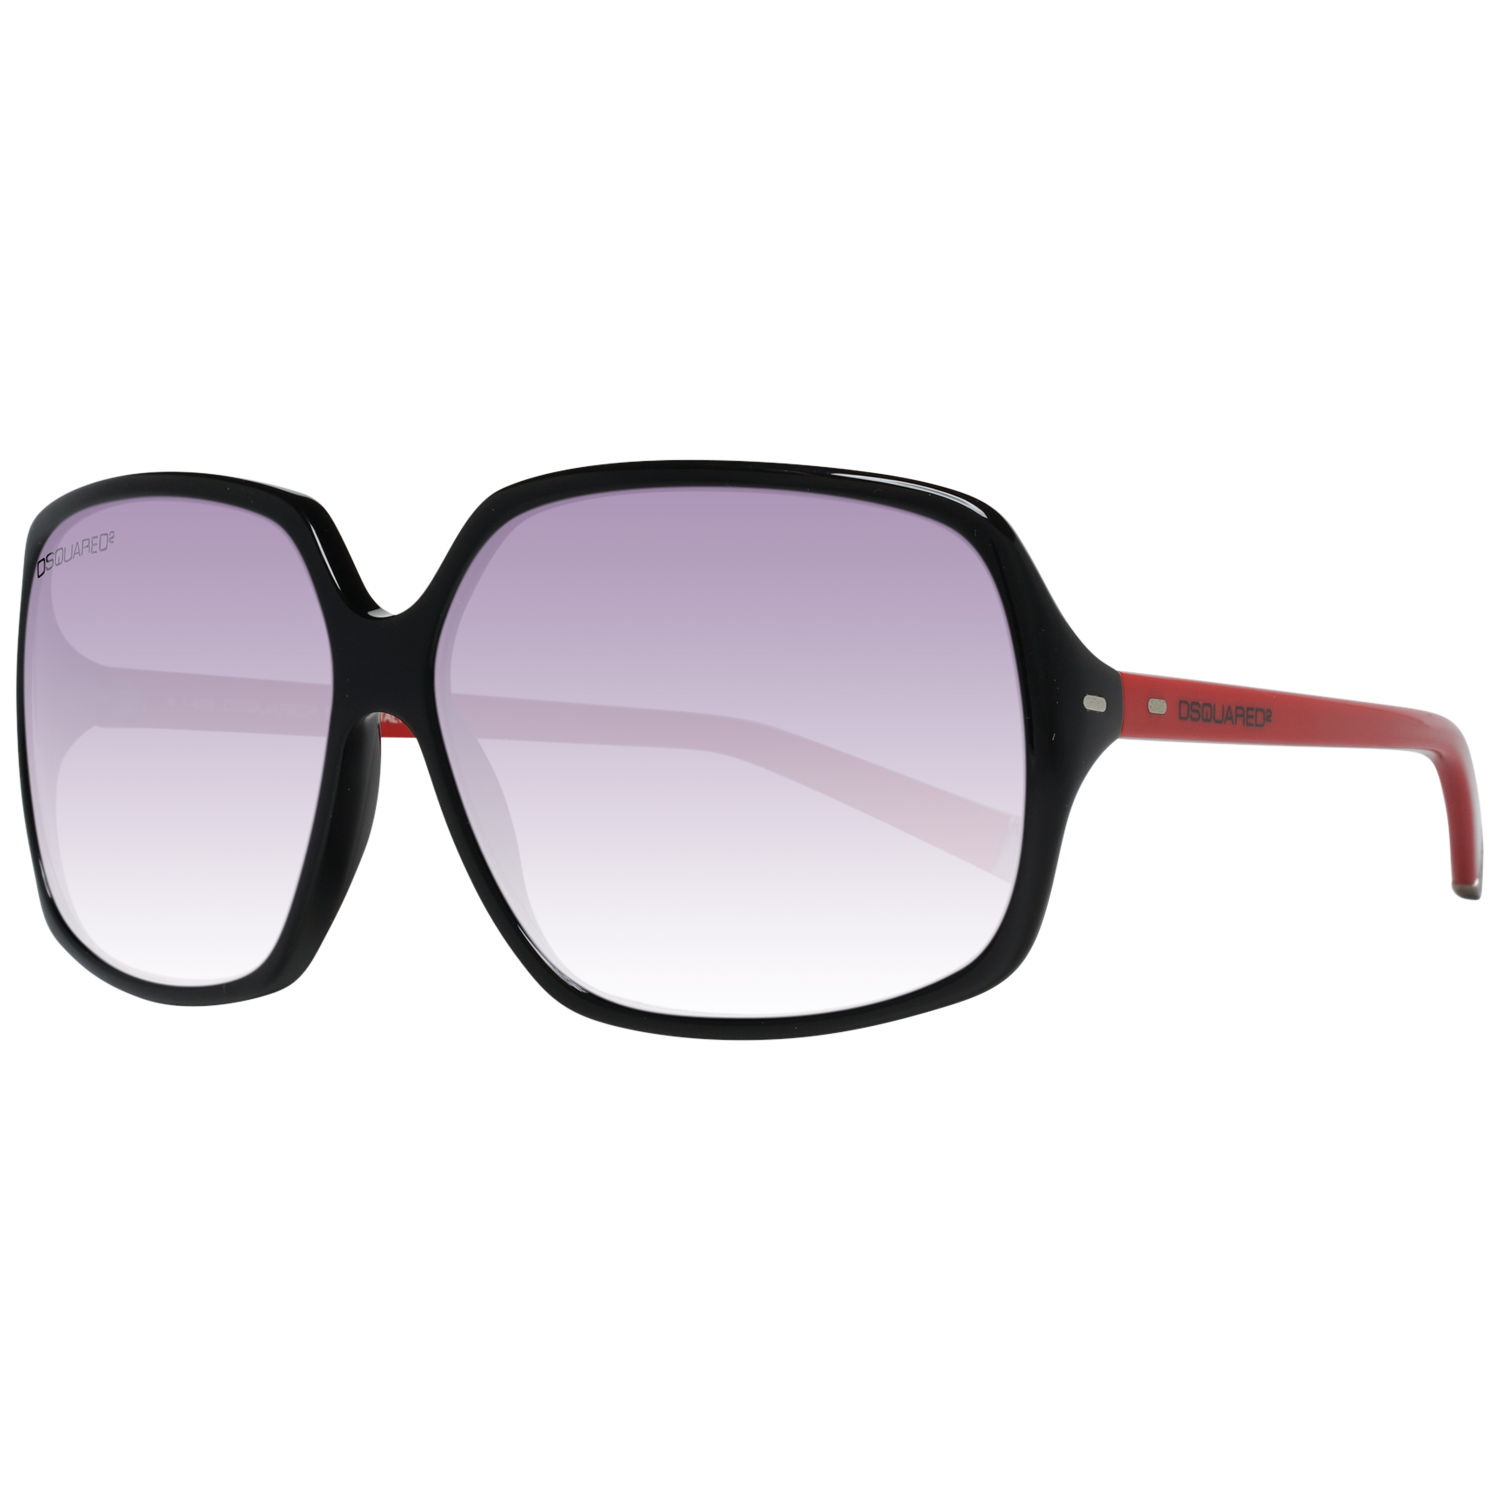 Dsquared2 Sunglasses DQ0035 01B 62 Black